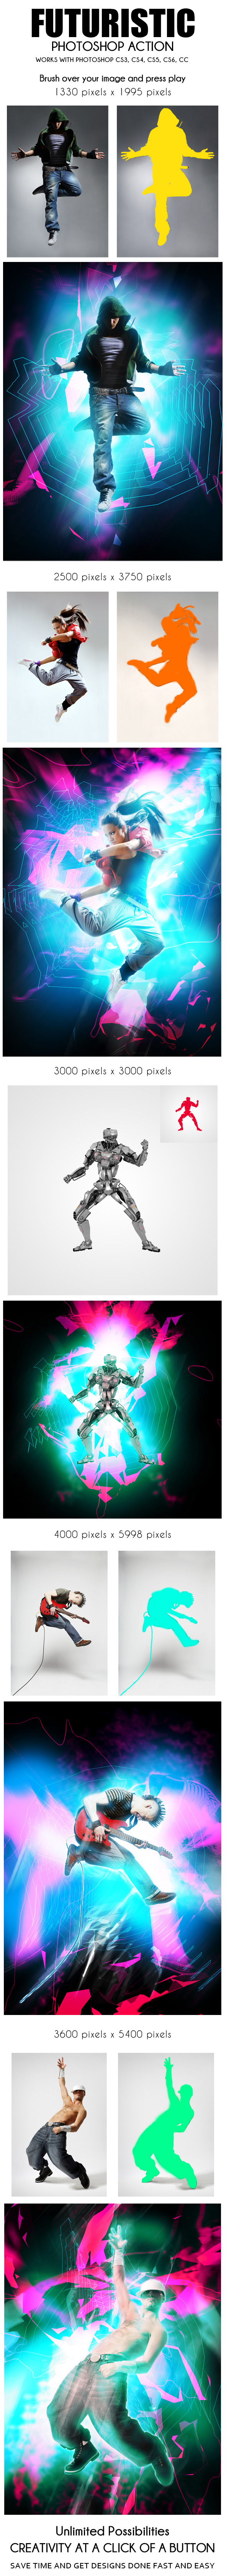 Futuristic Photoshop Action - Photo Effects Actions